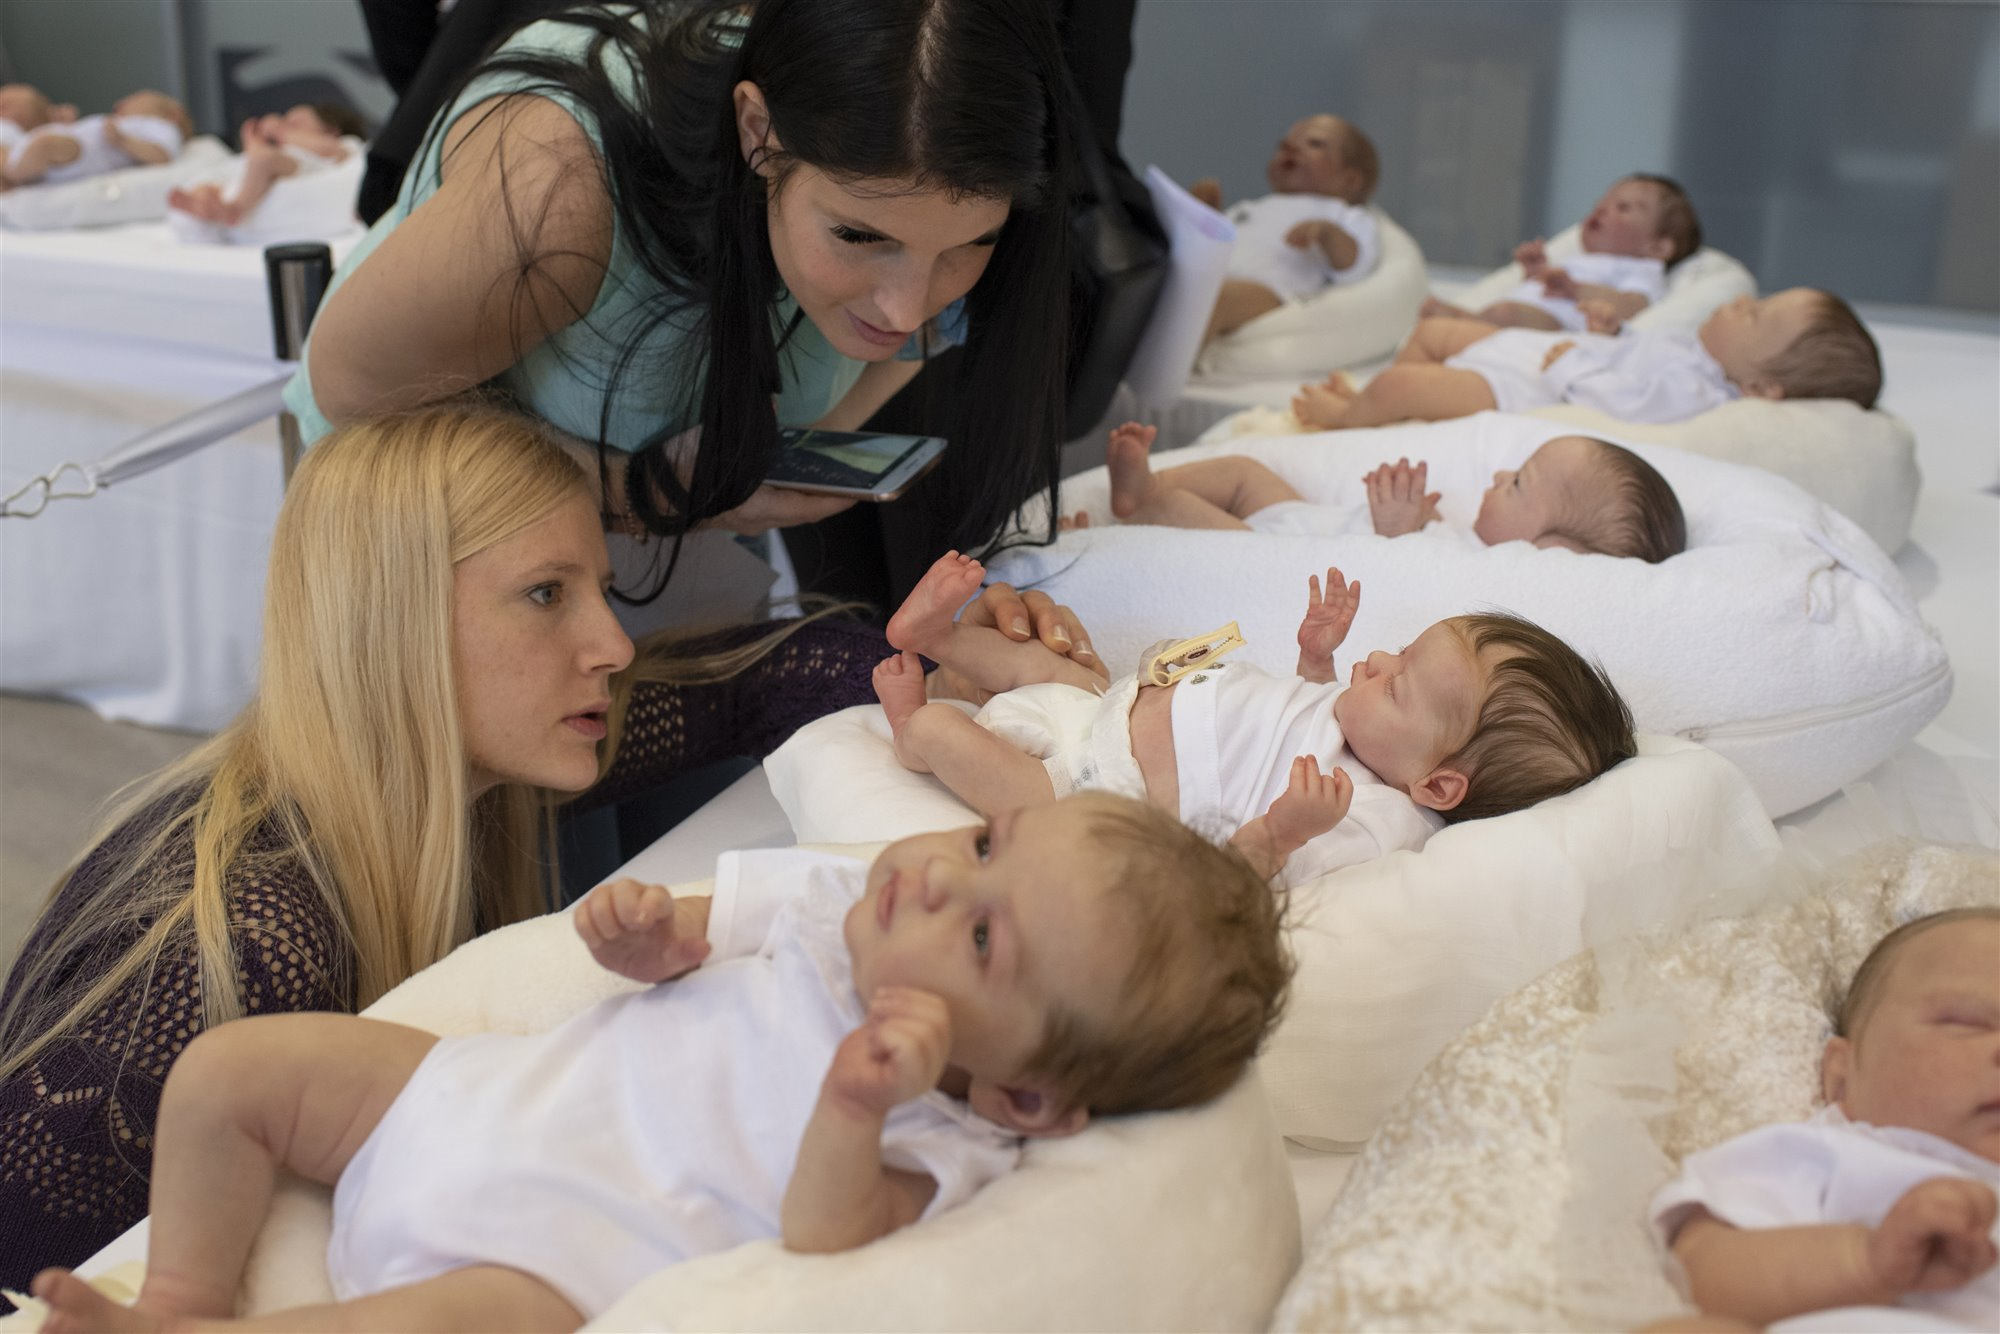 Judges are looking at reborn dolls during the Valencia doll shaw